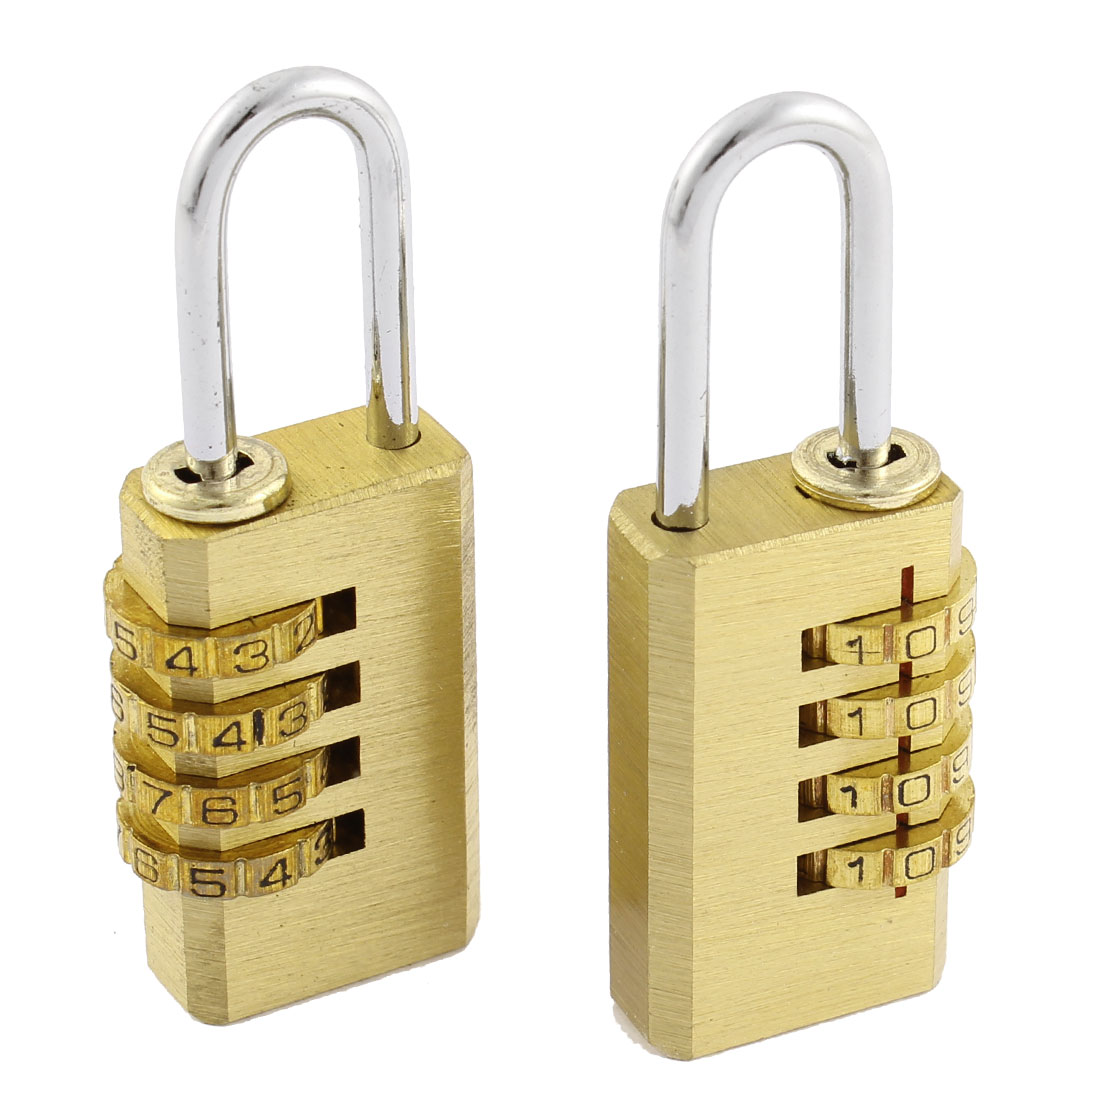 Cupboard Boxes 4 Digit 0-9 Number Resettable Combination Lock Padlock Gold Tone 2Pcs